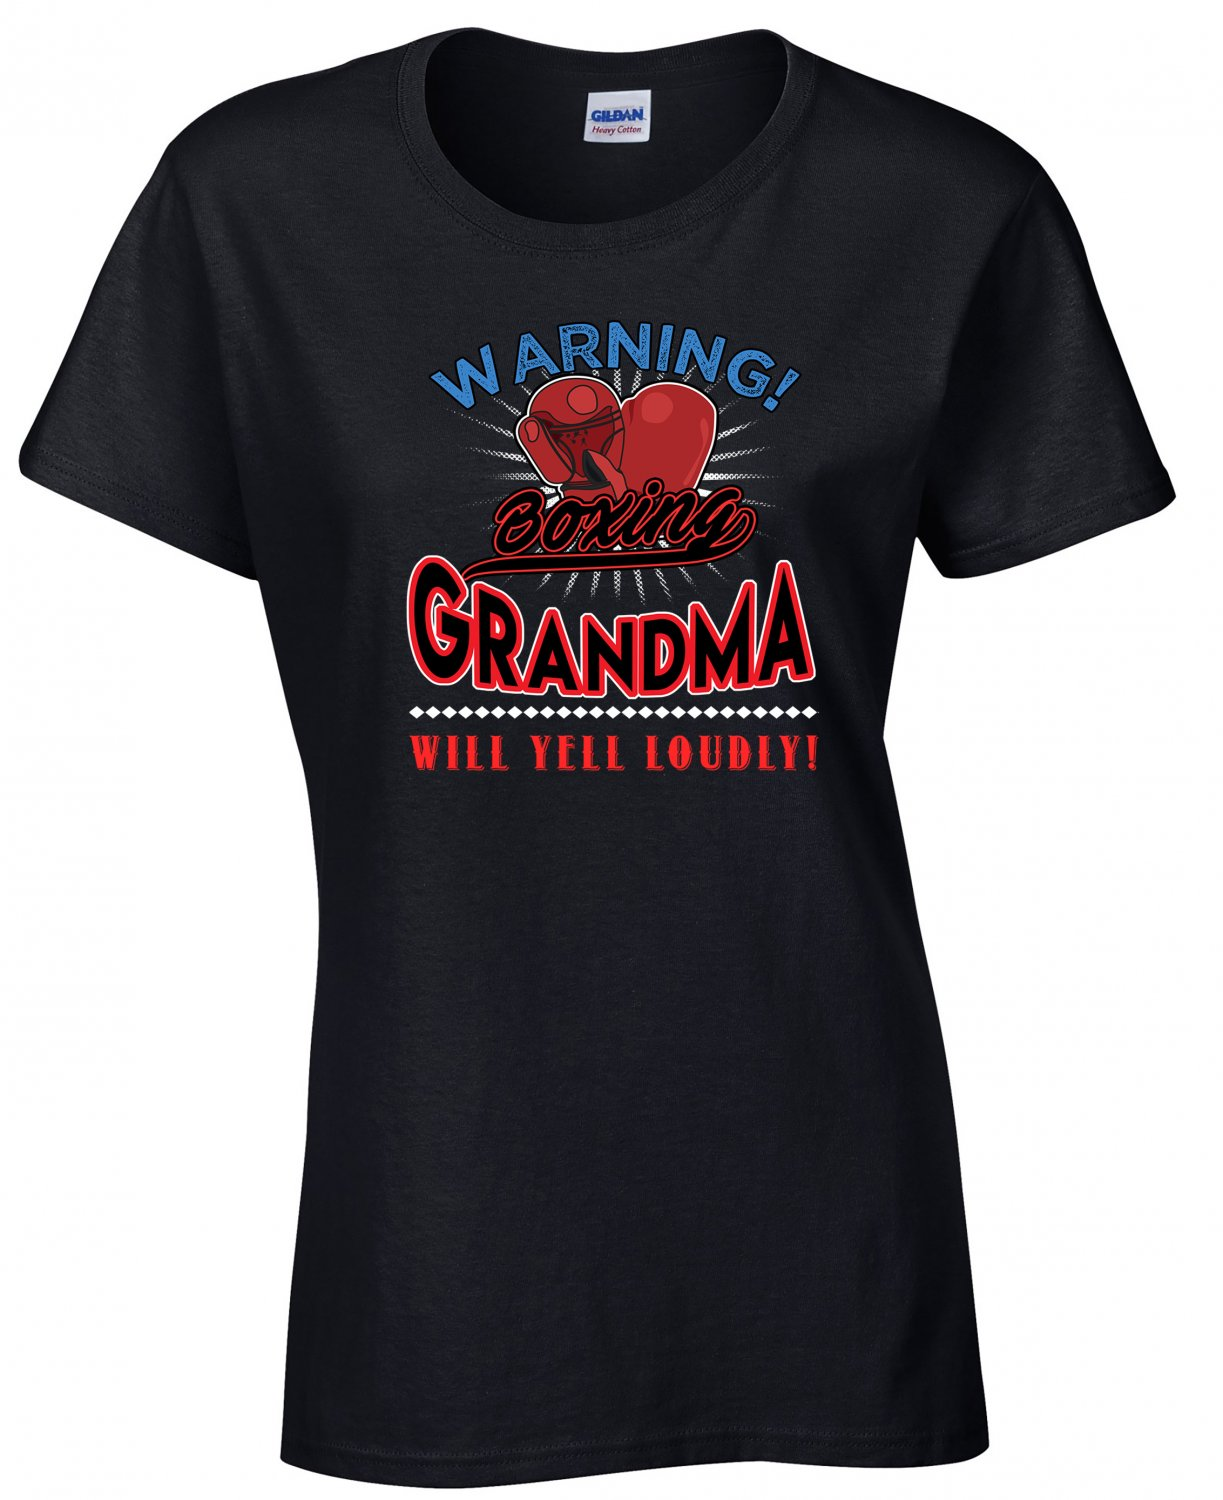 Boxing Grandma, Warning Boxing Grandma Will Yell Loudly Shirt